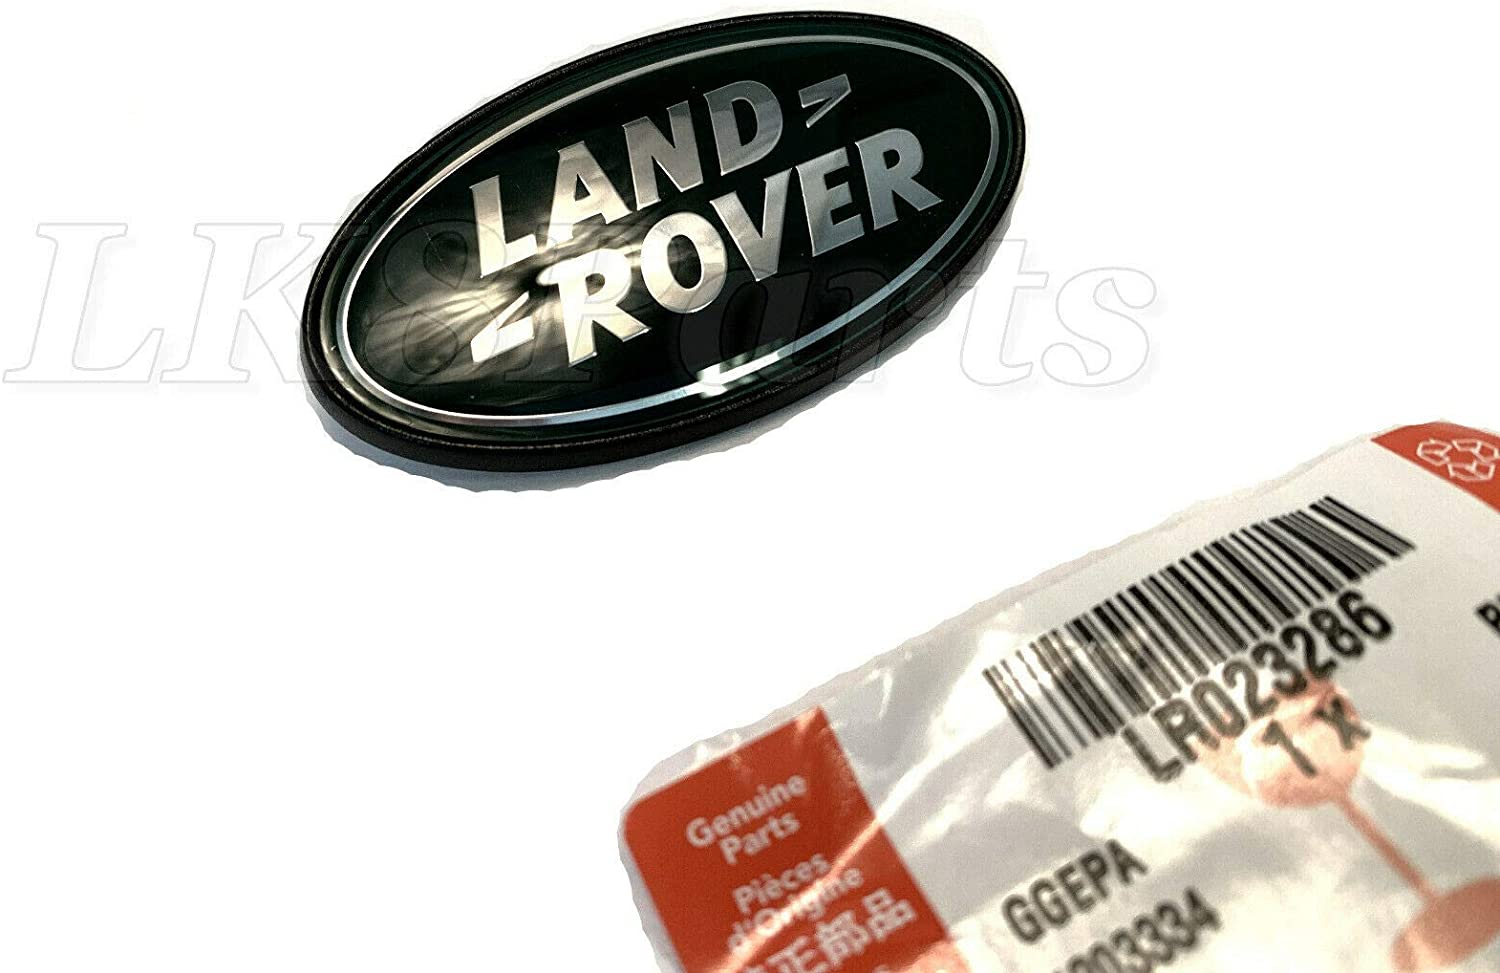 Gold HSE Chorme Trunk Rear Badge Decal Emblem Sticker For Discovery Range Rover